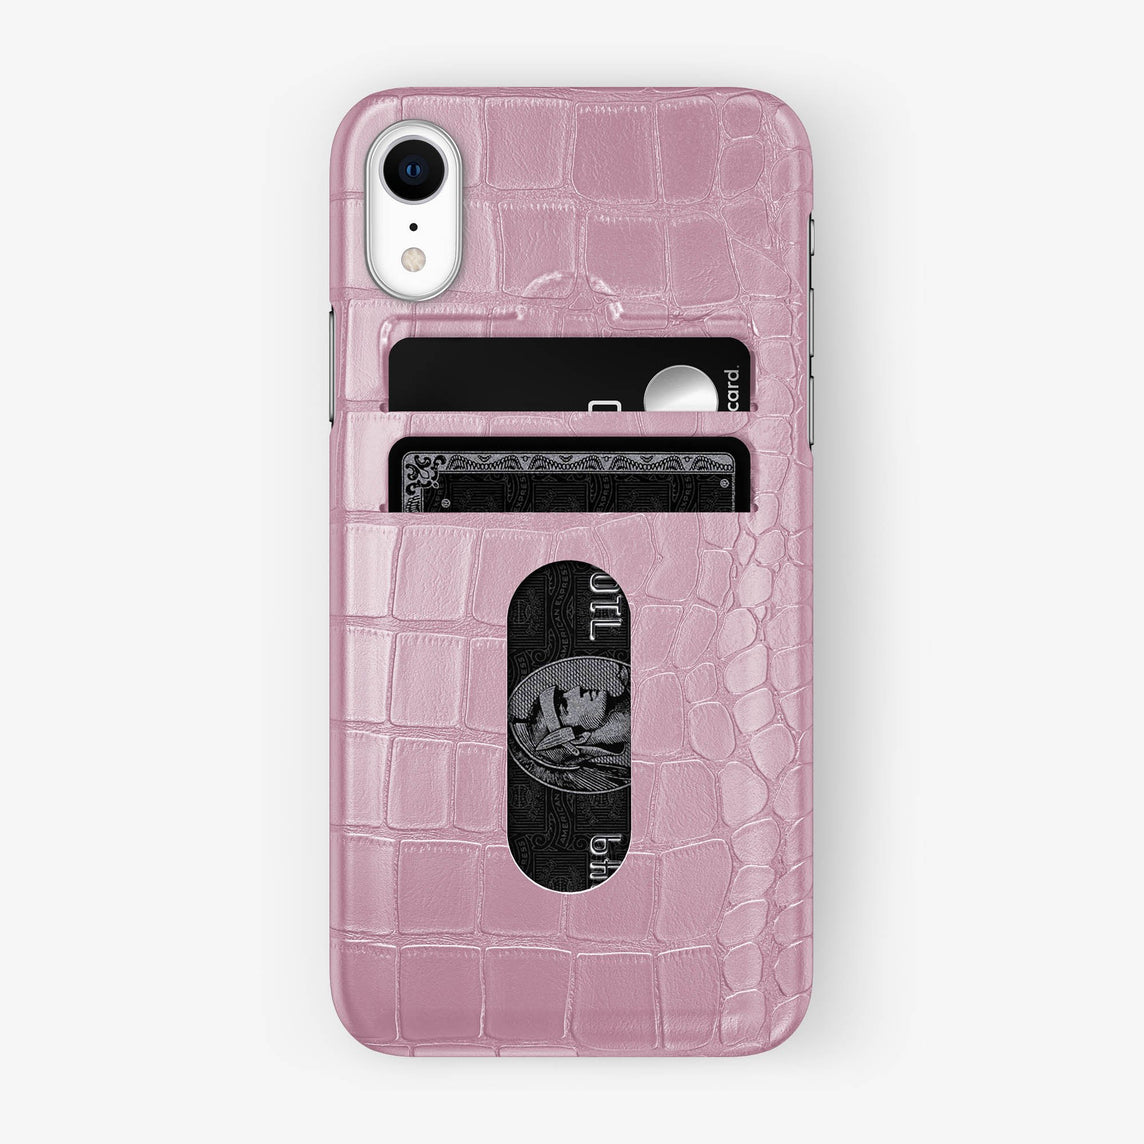 Alligator Card Holder Case iPhone Xr | Pink - Stainless Steel